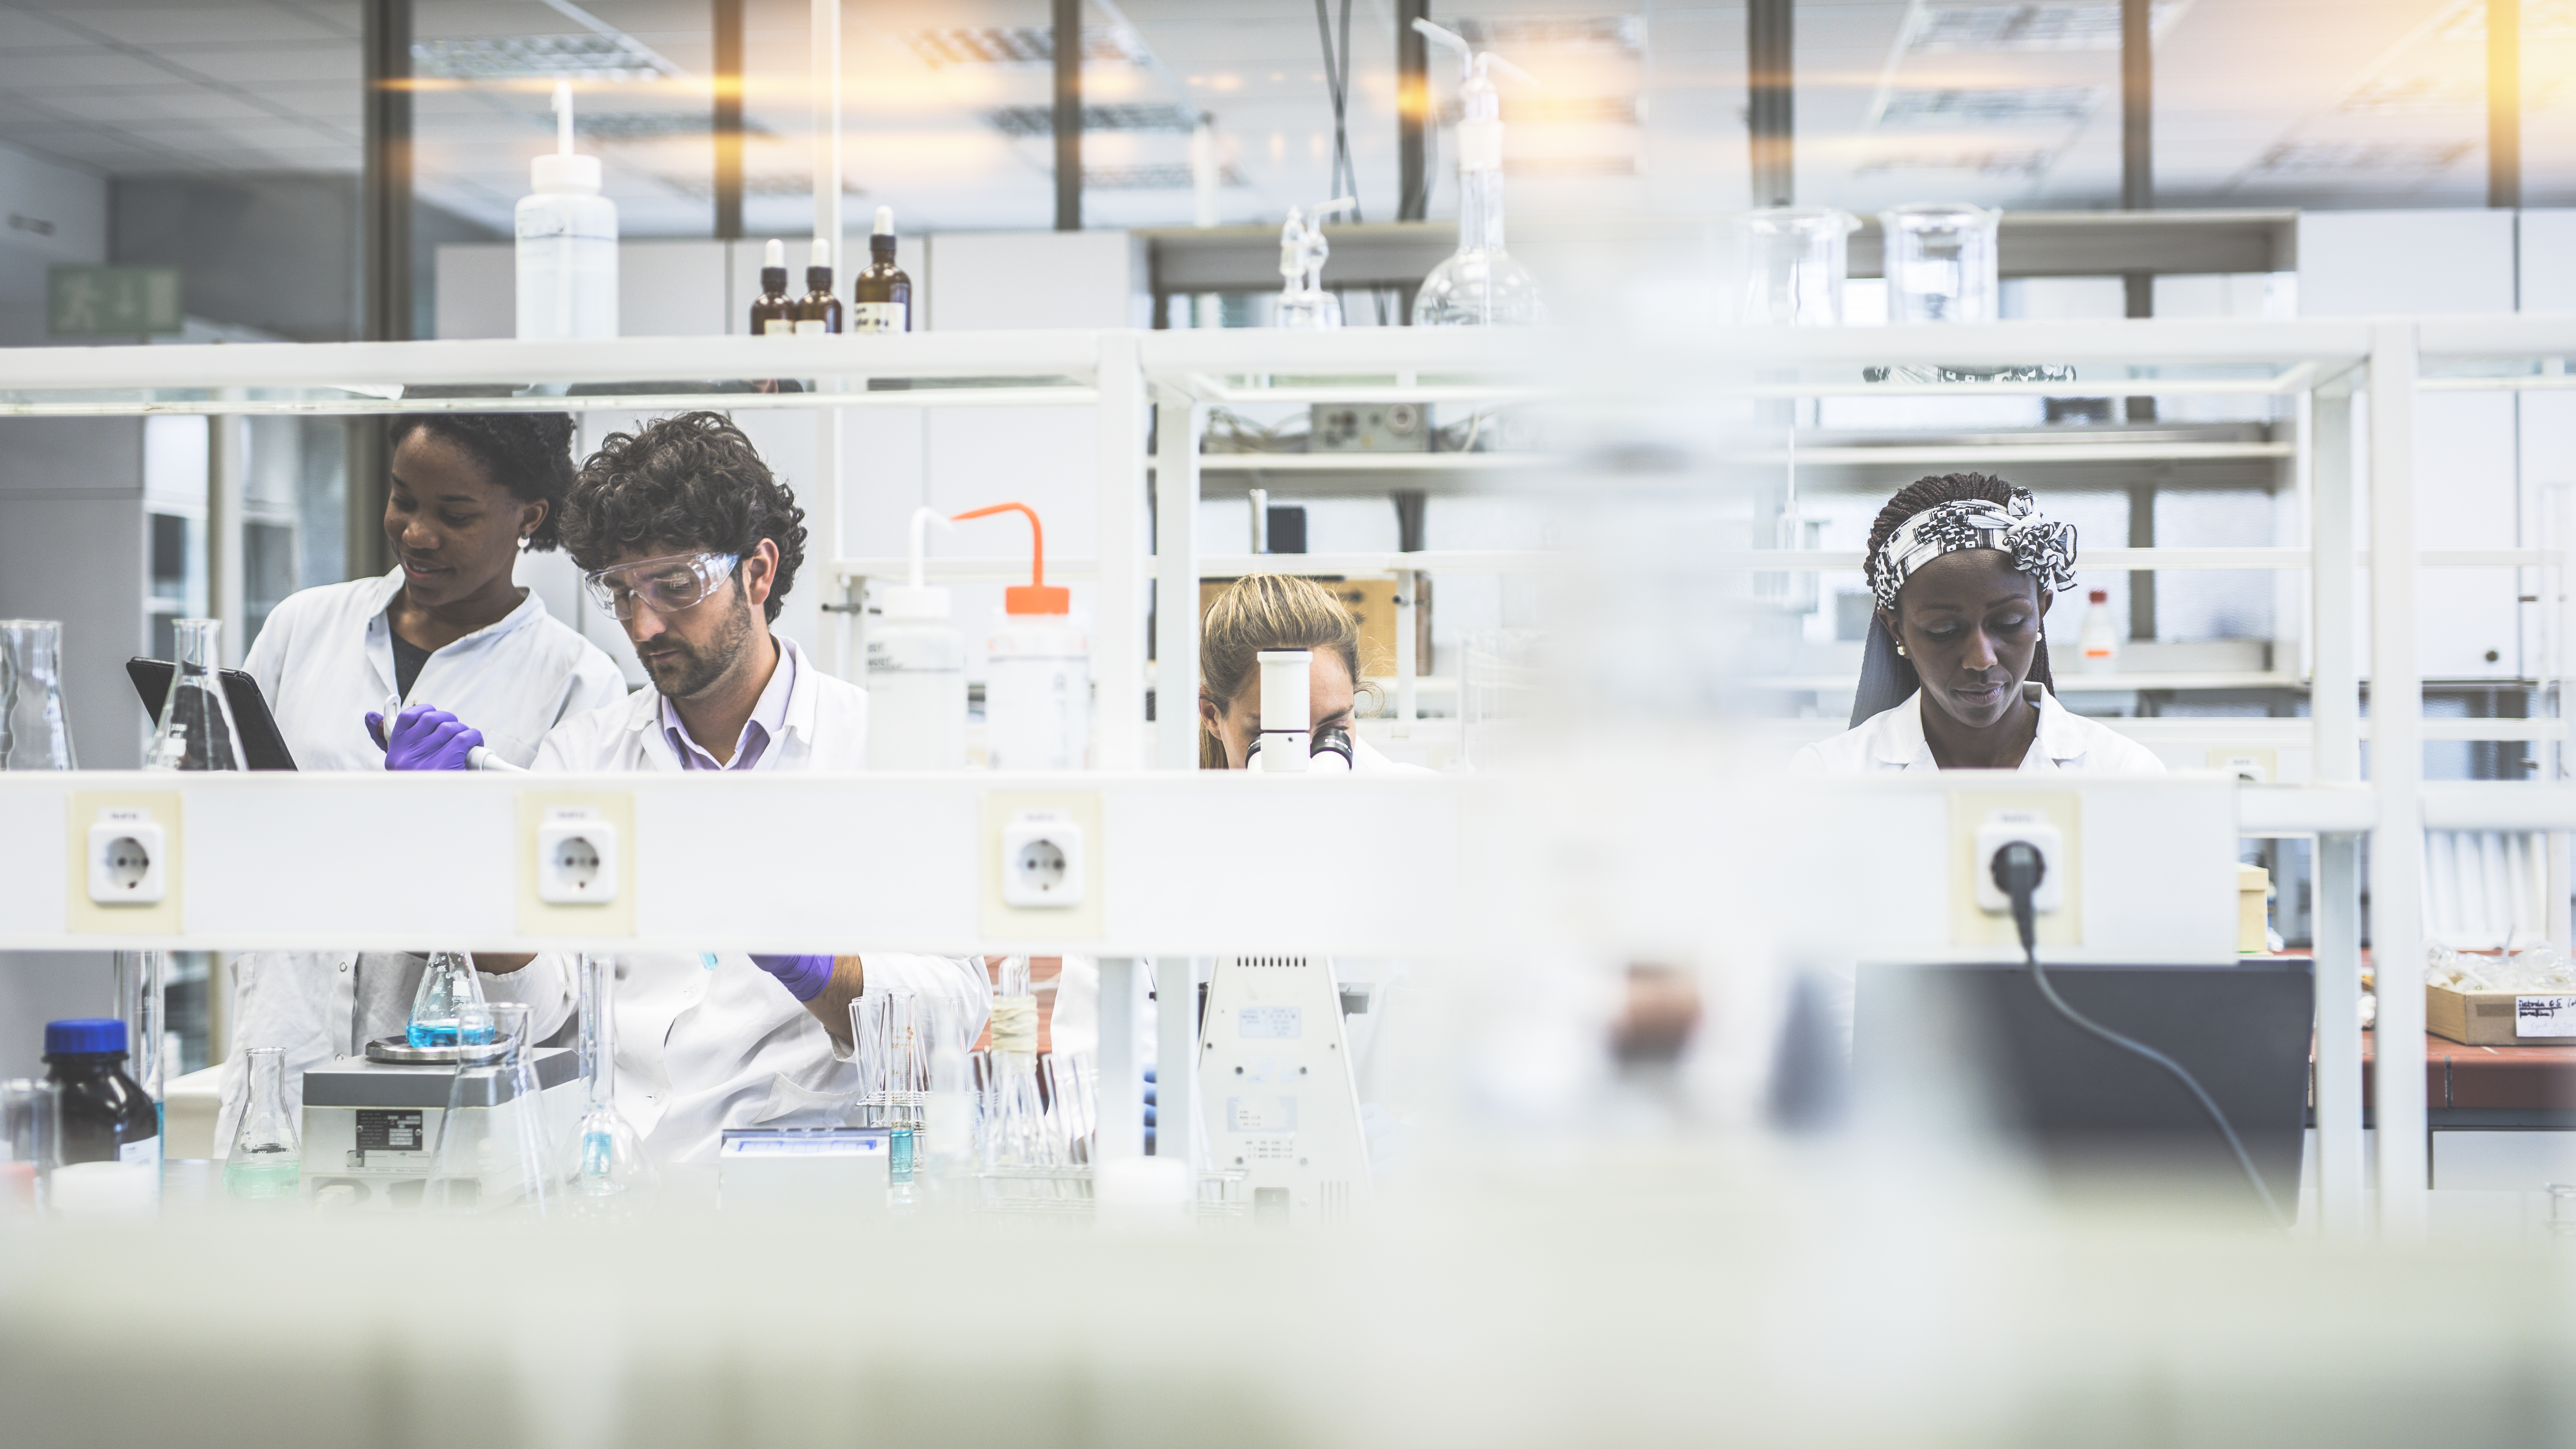 A group of scientists working in the laboratory